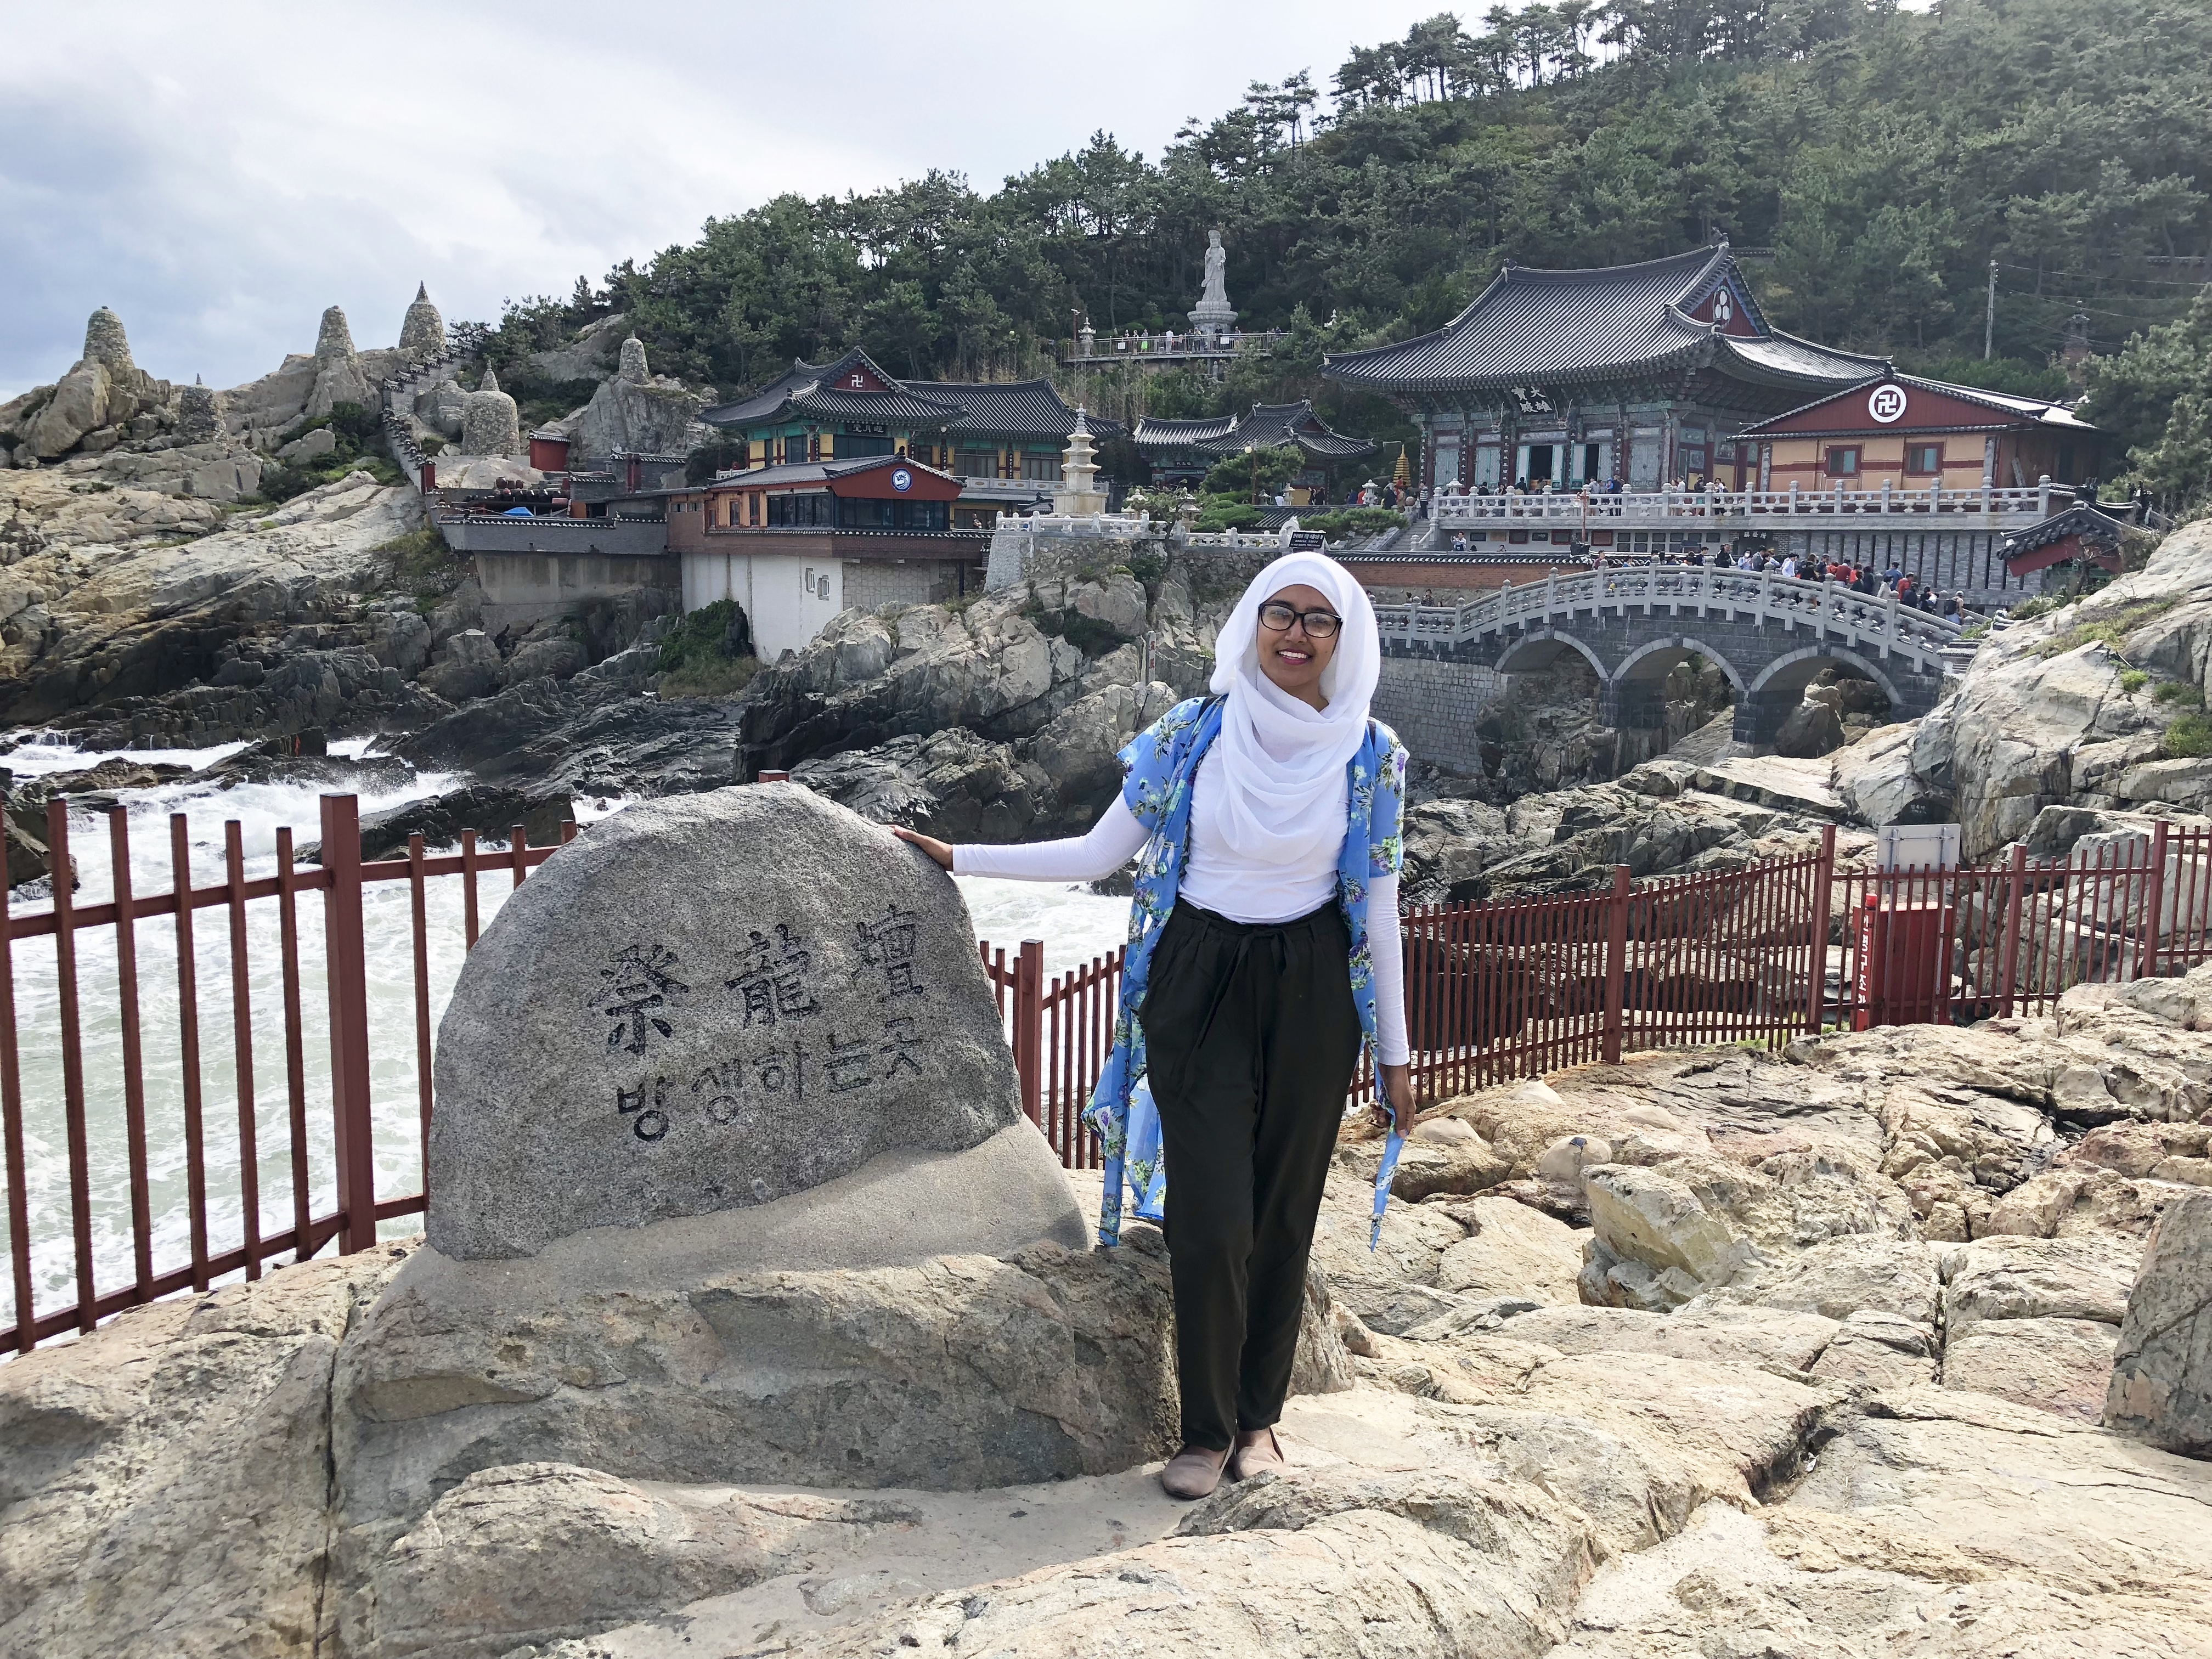 Nabila standing beside a stone with writing in another language